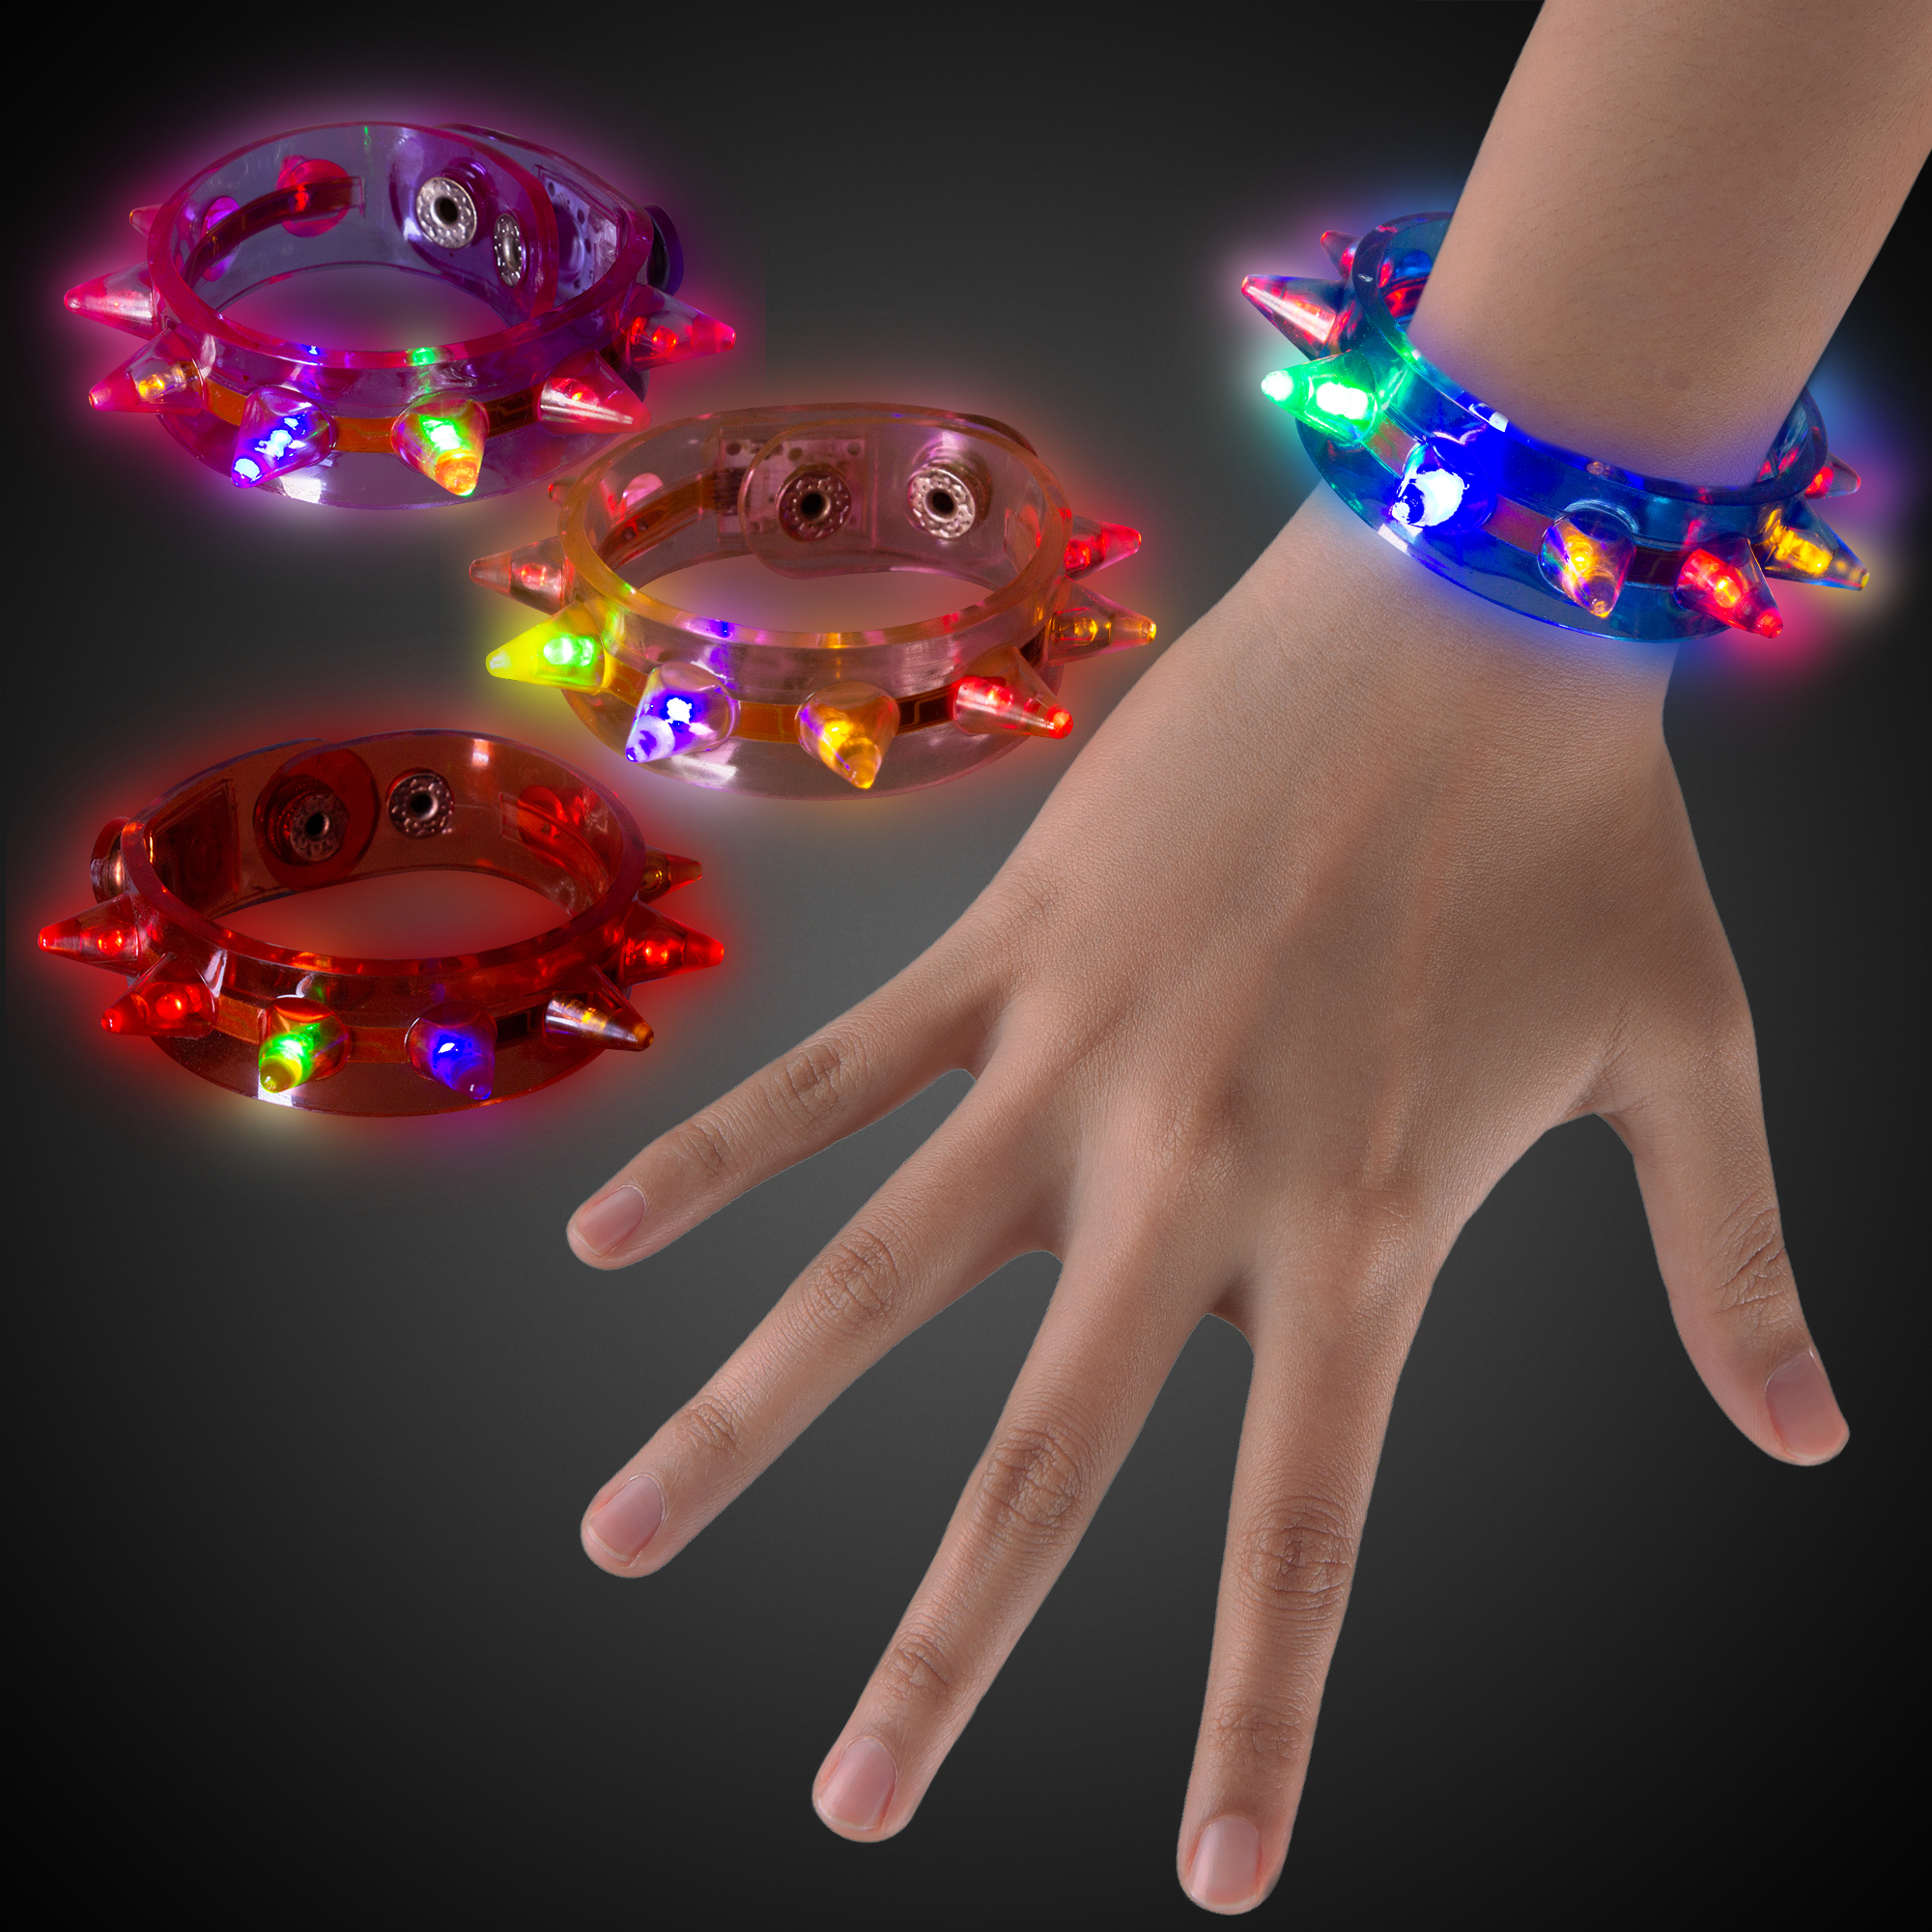 Light Up Spike Bracelets 12 Pieces LED Wristbands Flashing Blinky Party Rave Fun